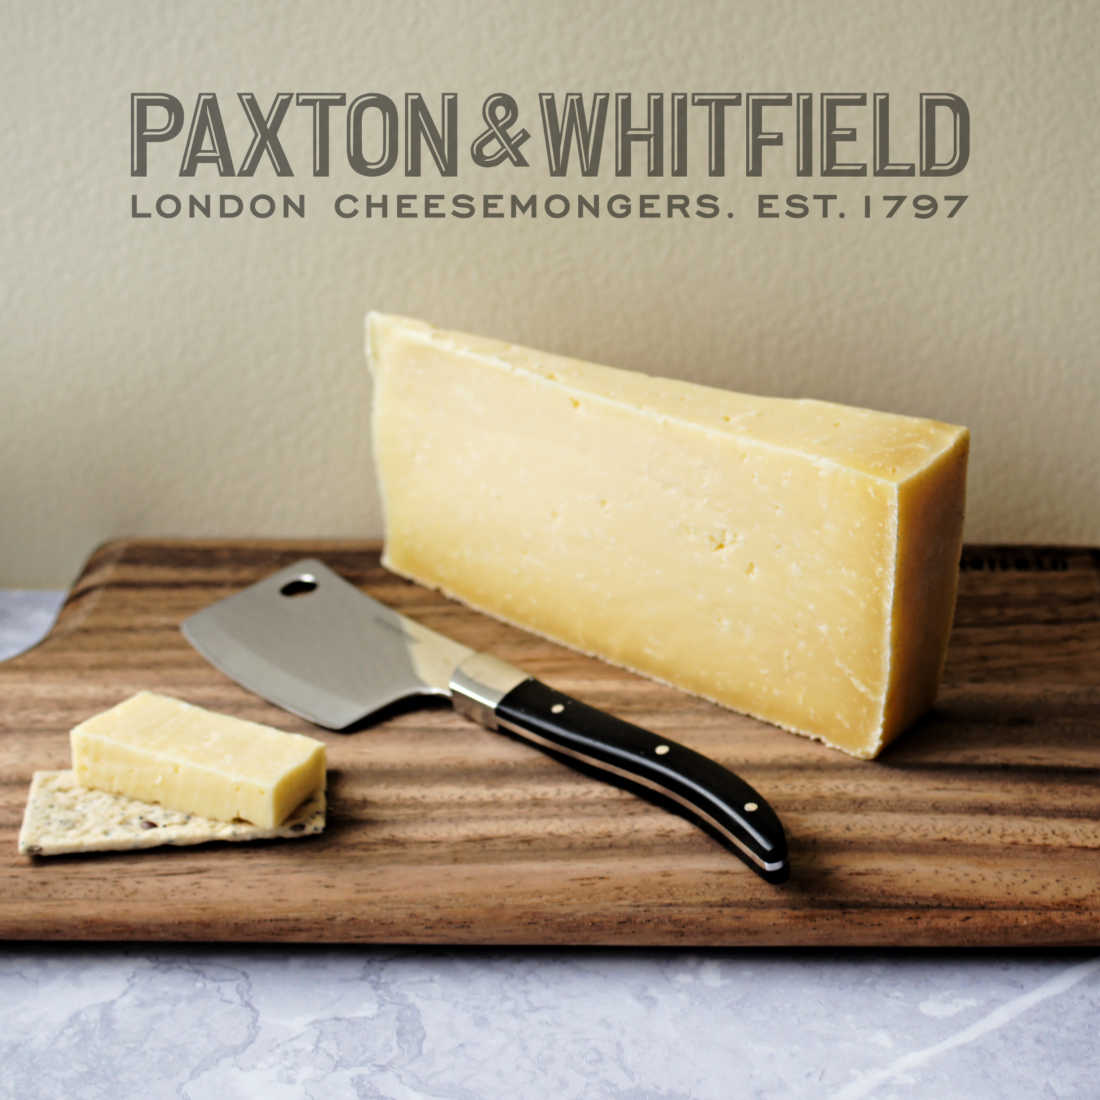 Dunlop-Cheese-Low-Res-Square